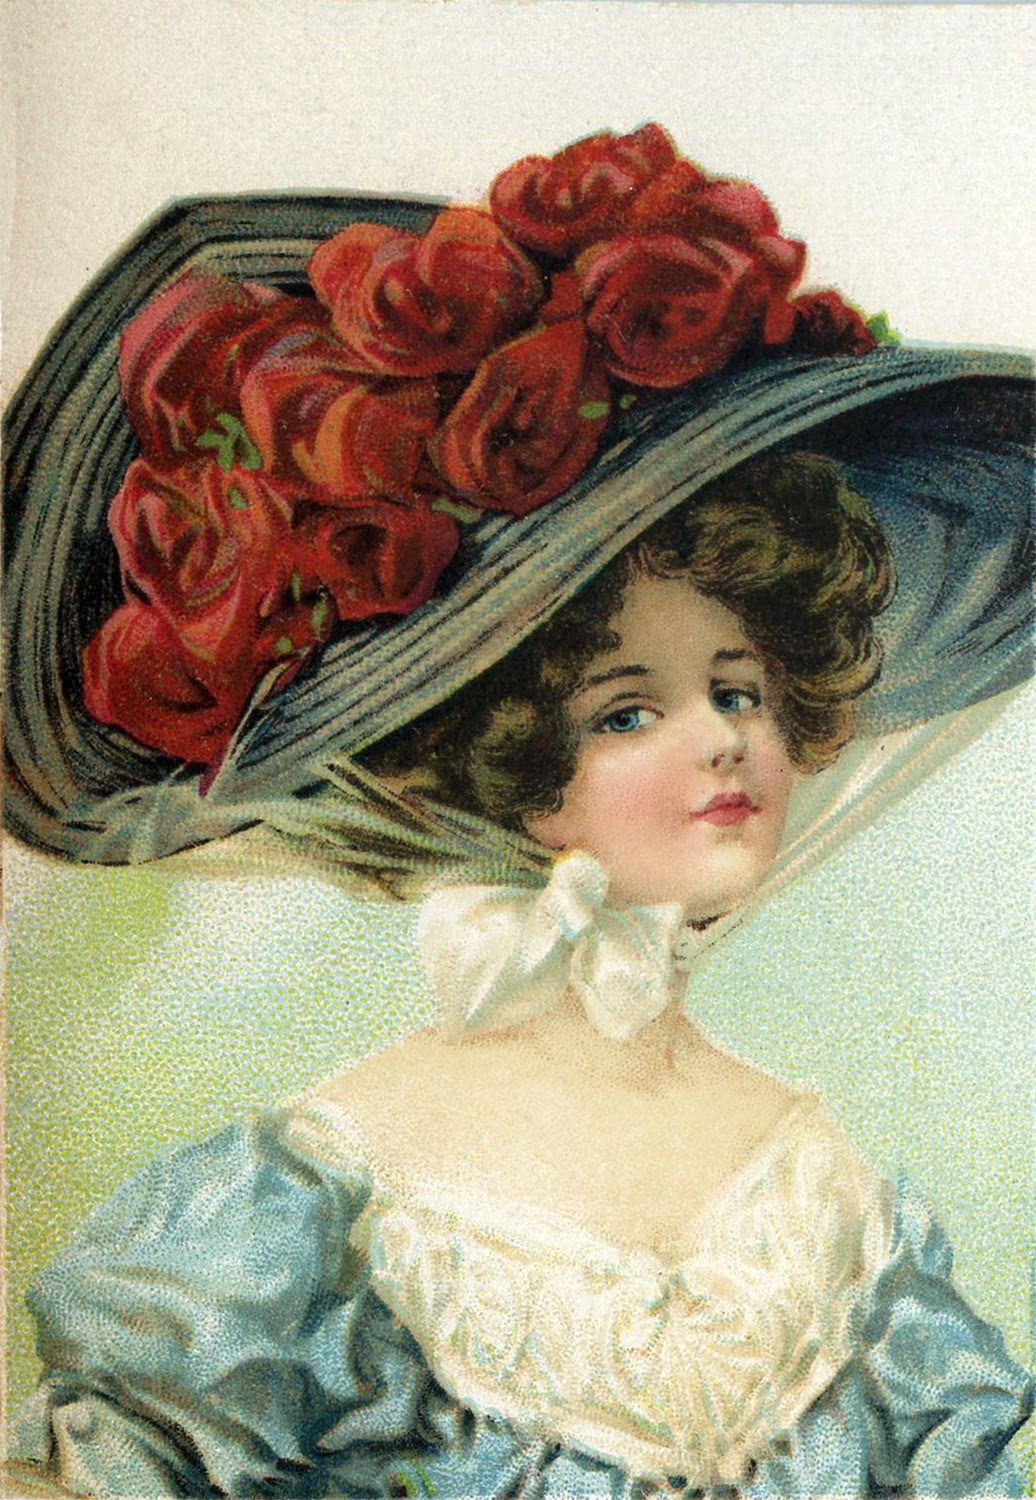 Victorian woman with large hat filled with red roses